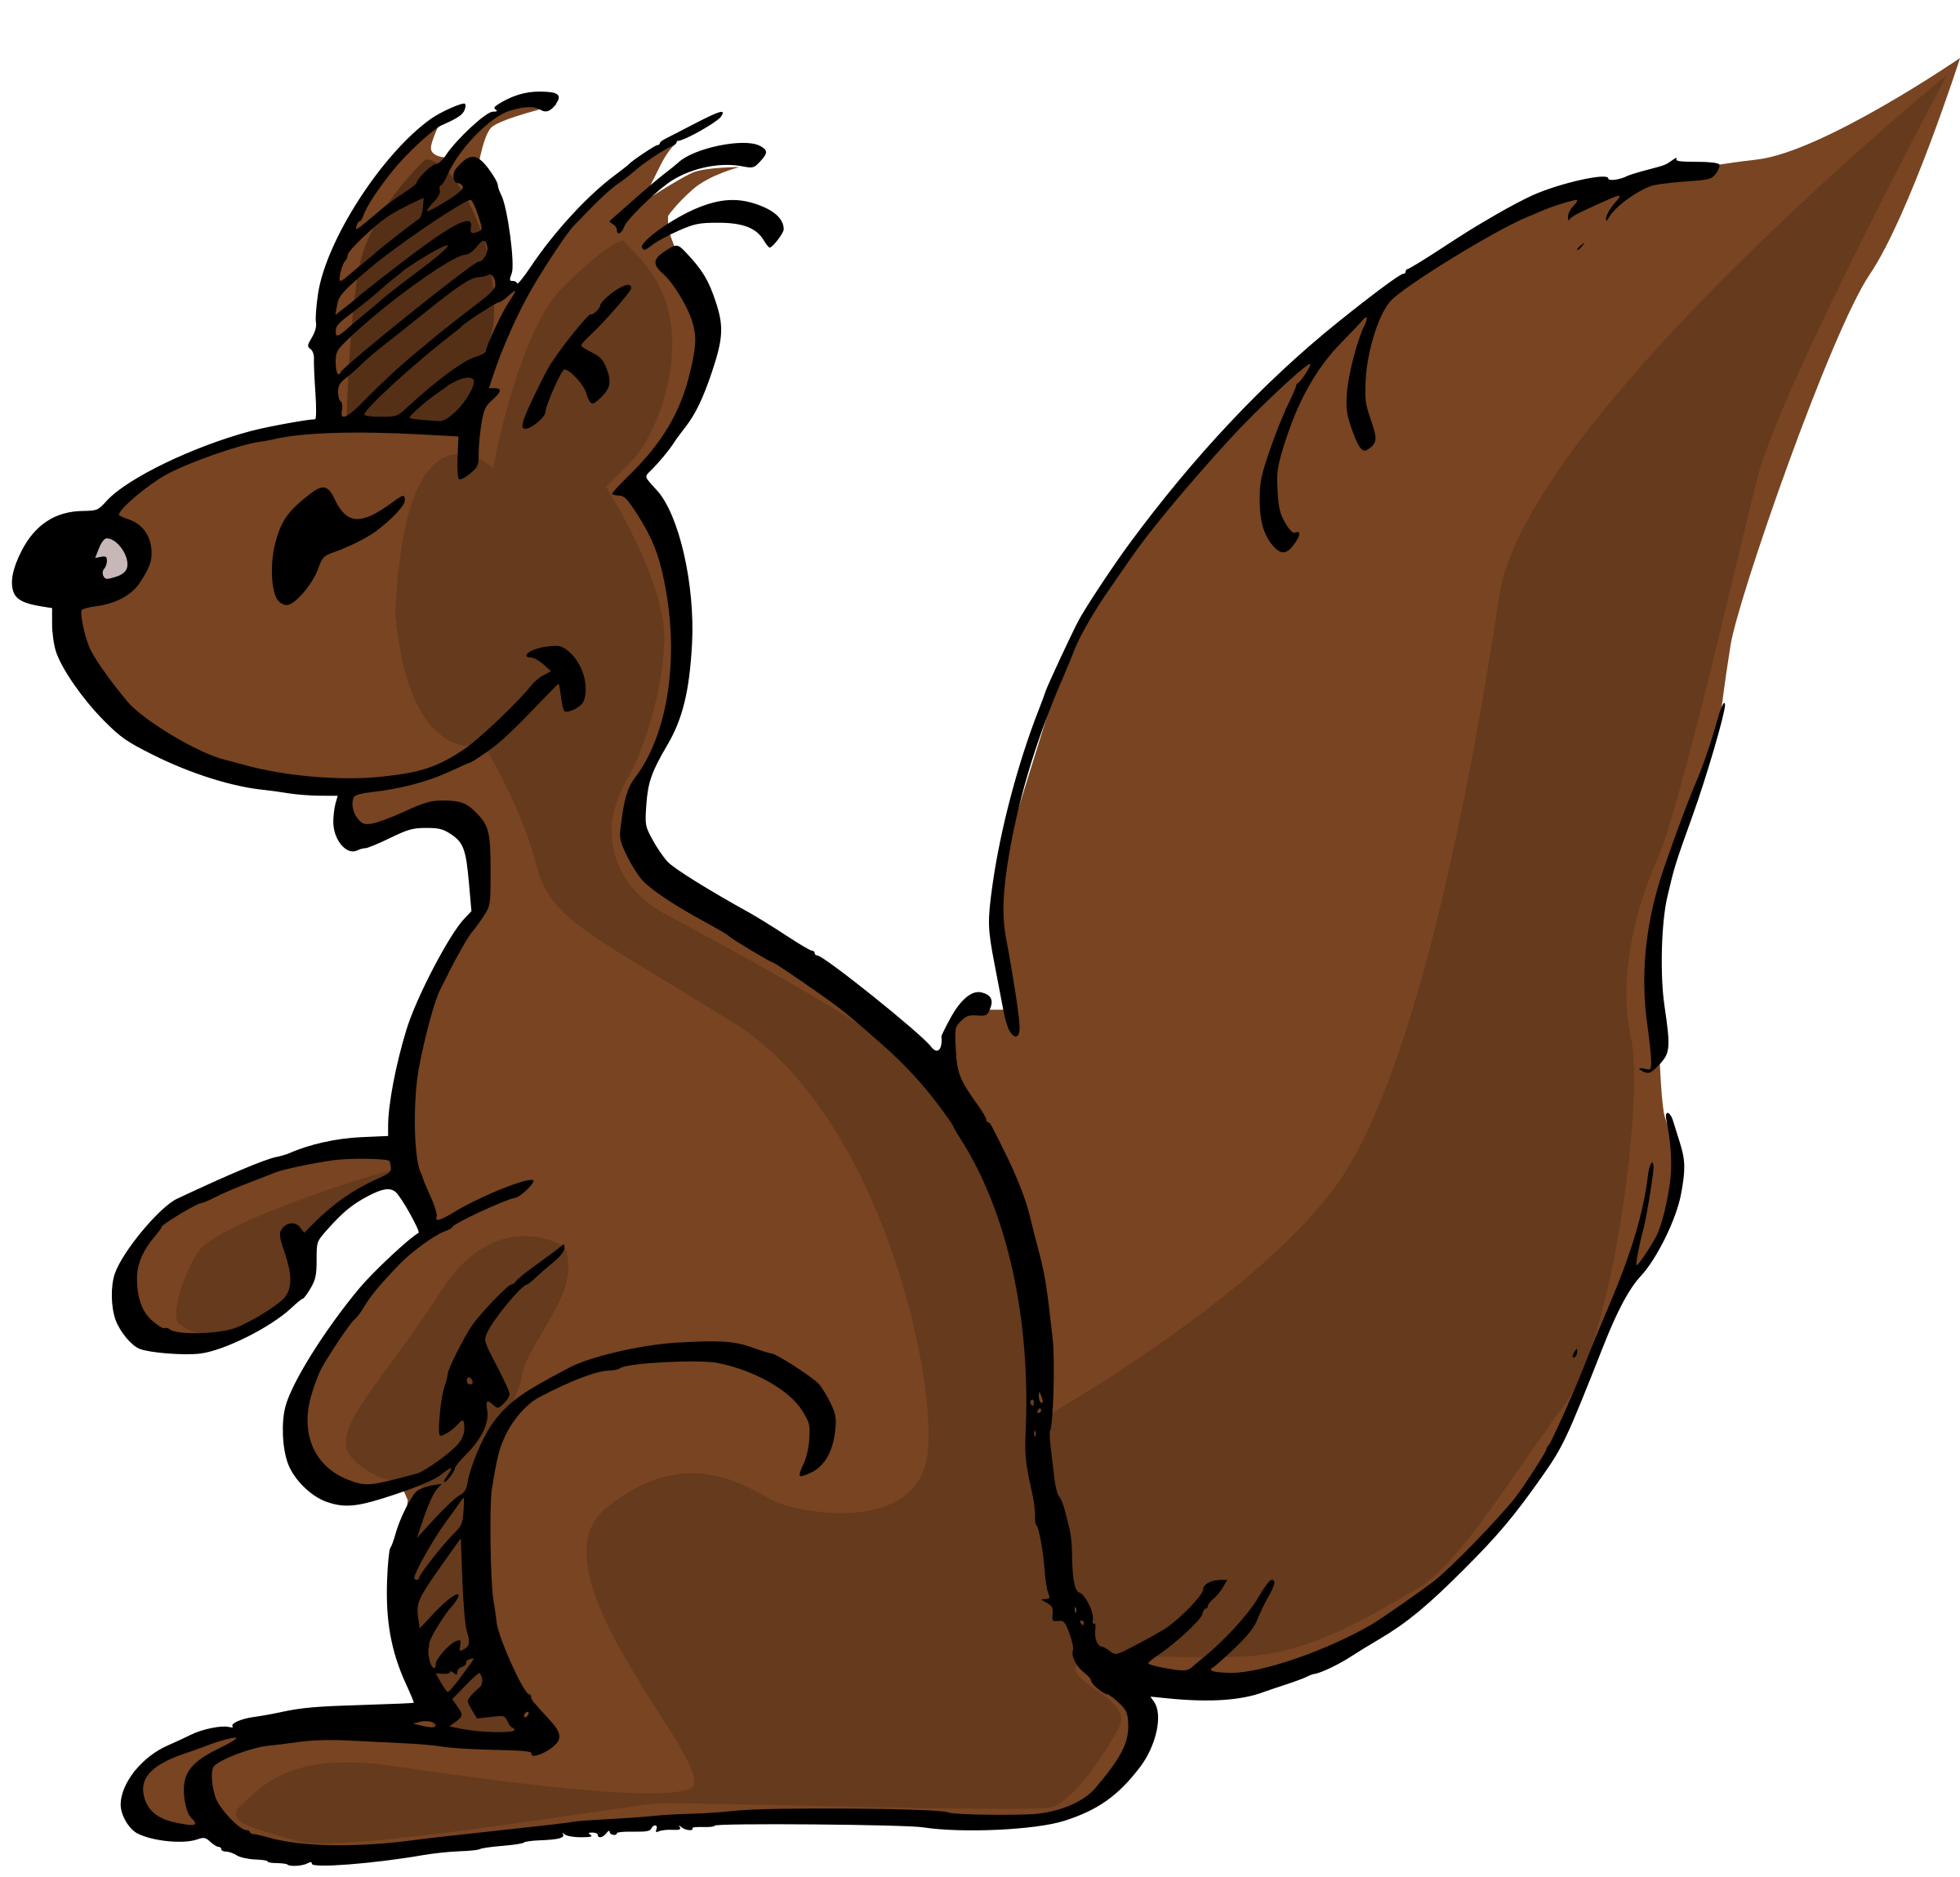 Squirrel by Odysseus